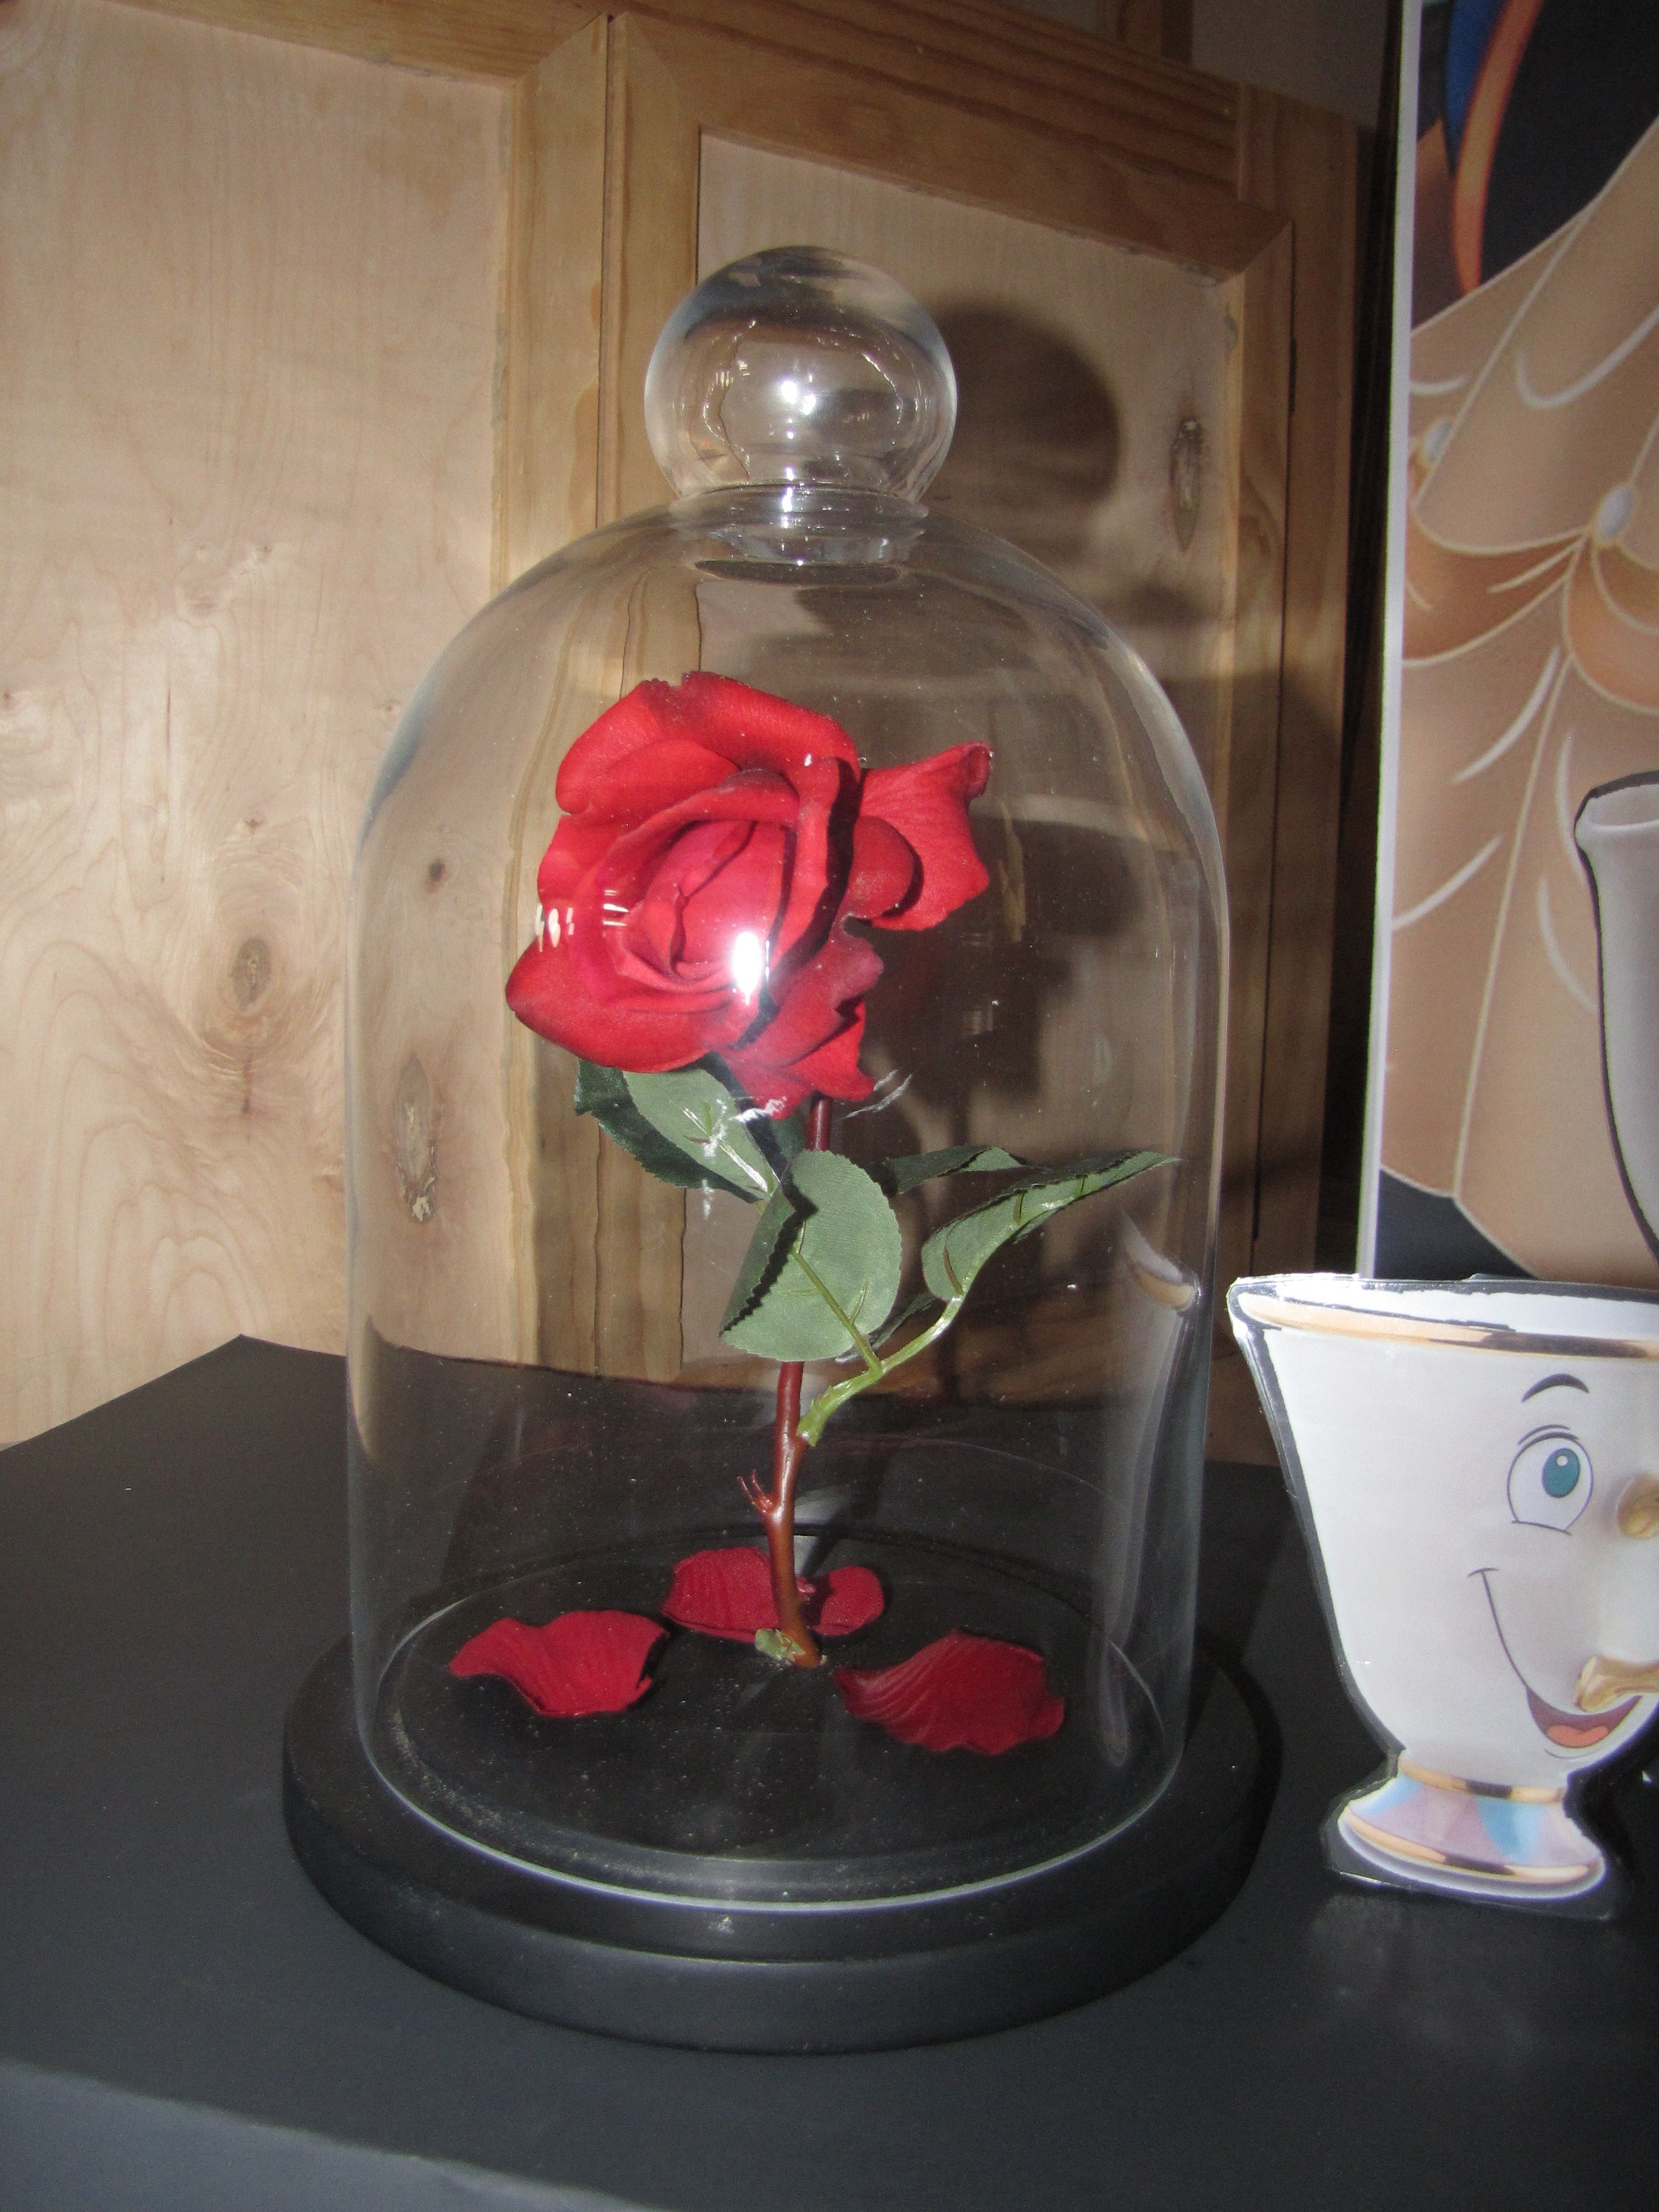 70587d88d5 Enchanted Rose: glass dome, realistic rose, and rose petals from Hobby  Lobby. Drilled an angled hole in the base for the rose stem.